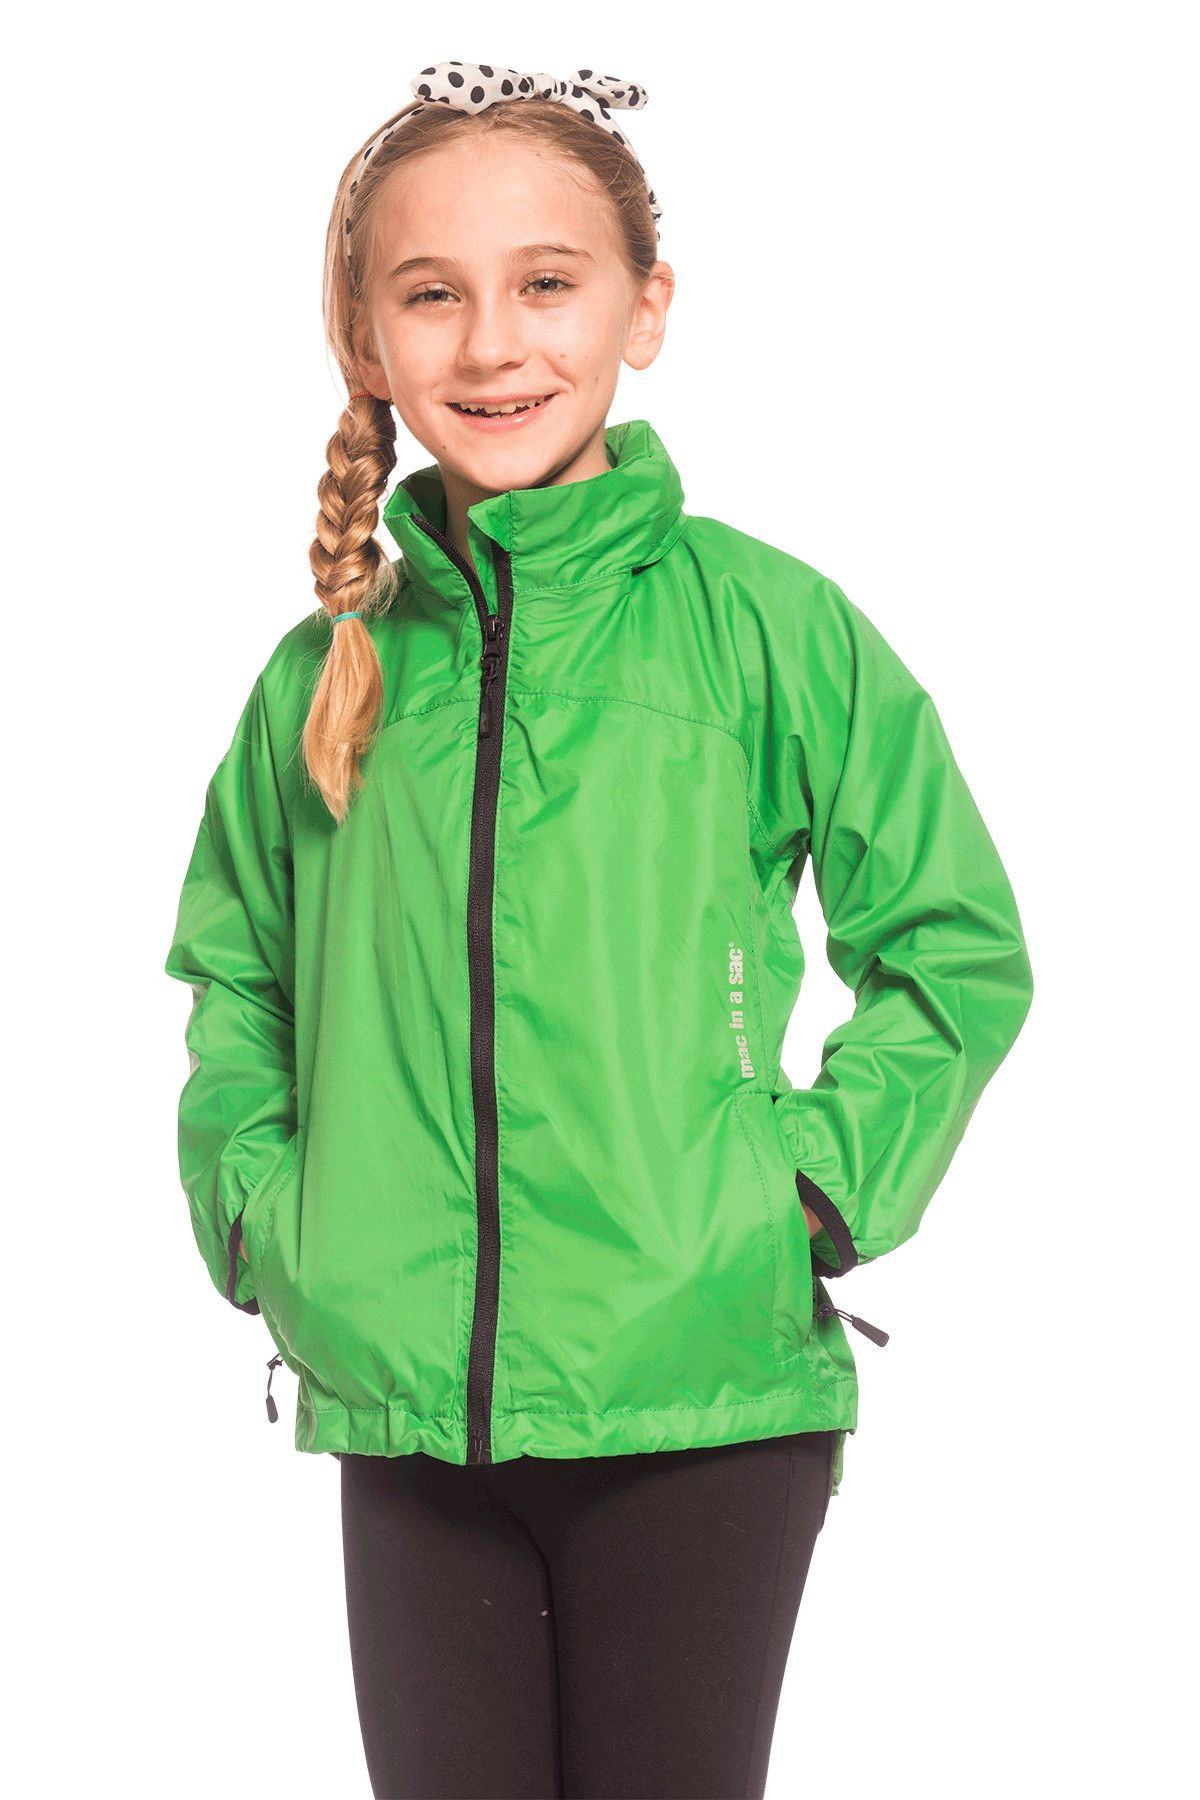 Mac in a Sac 2 Unisex Kids Packaway Jacket